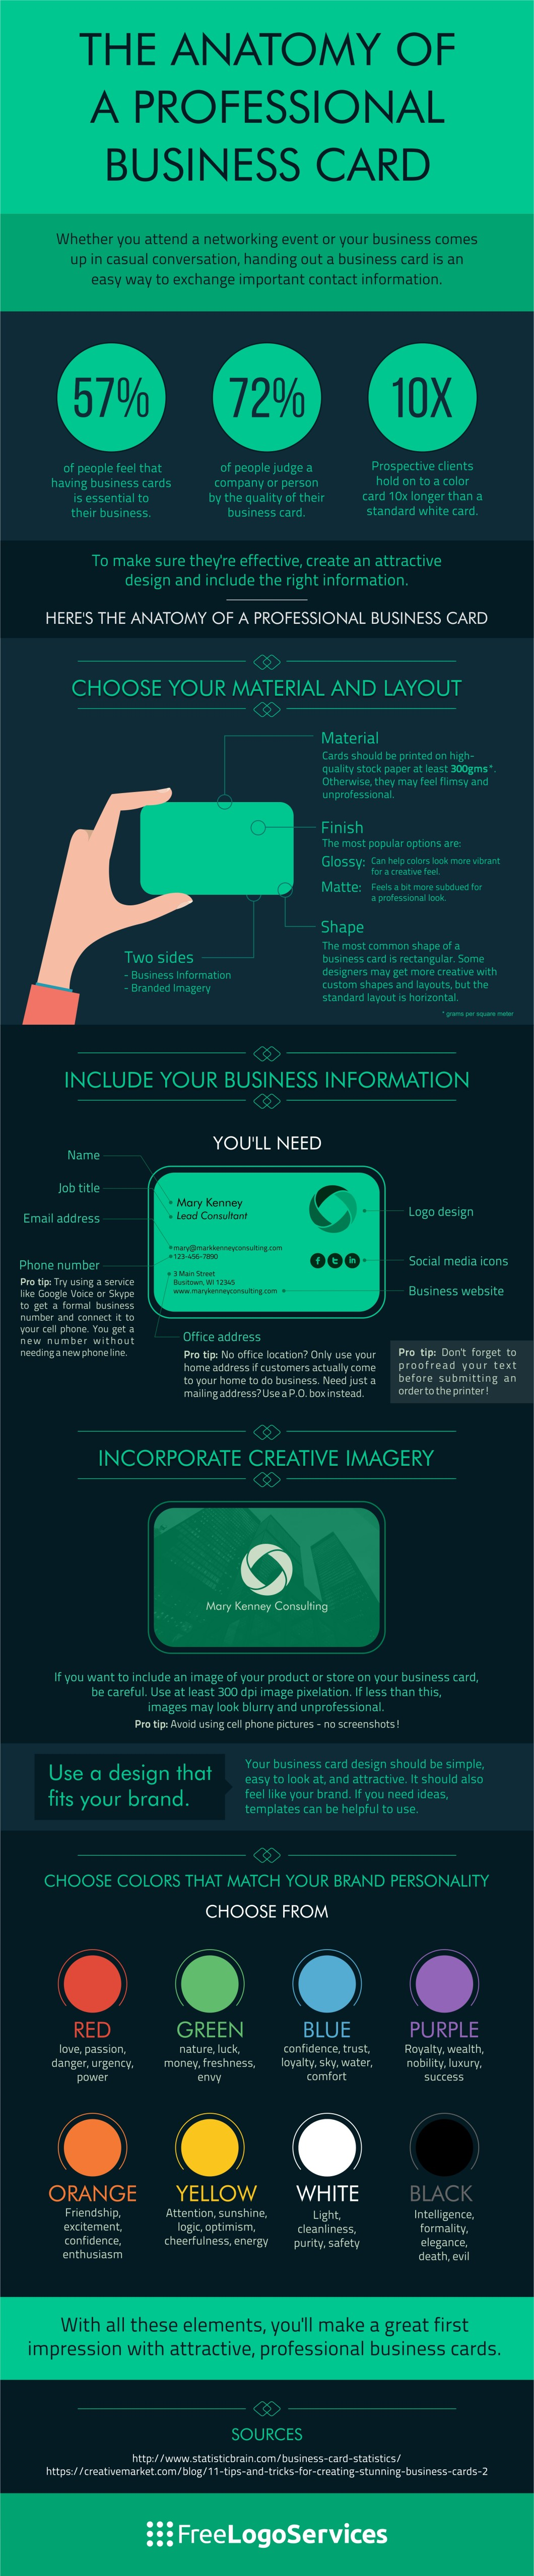 Business Cards: How to Design for Success - Infographic